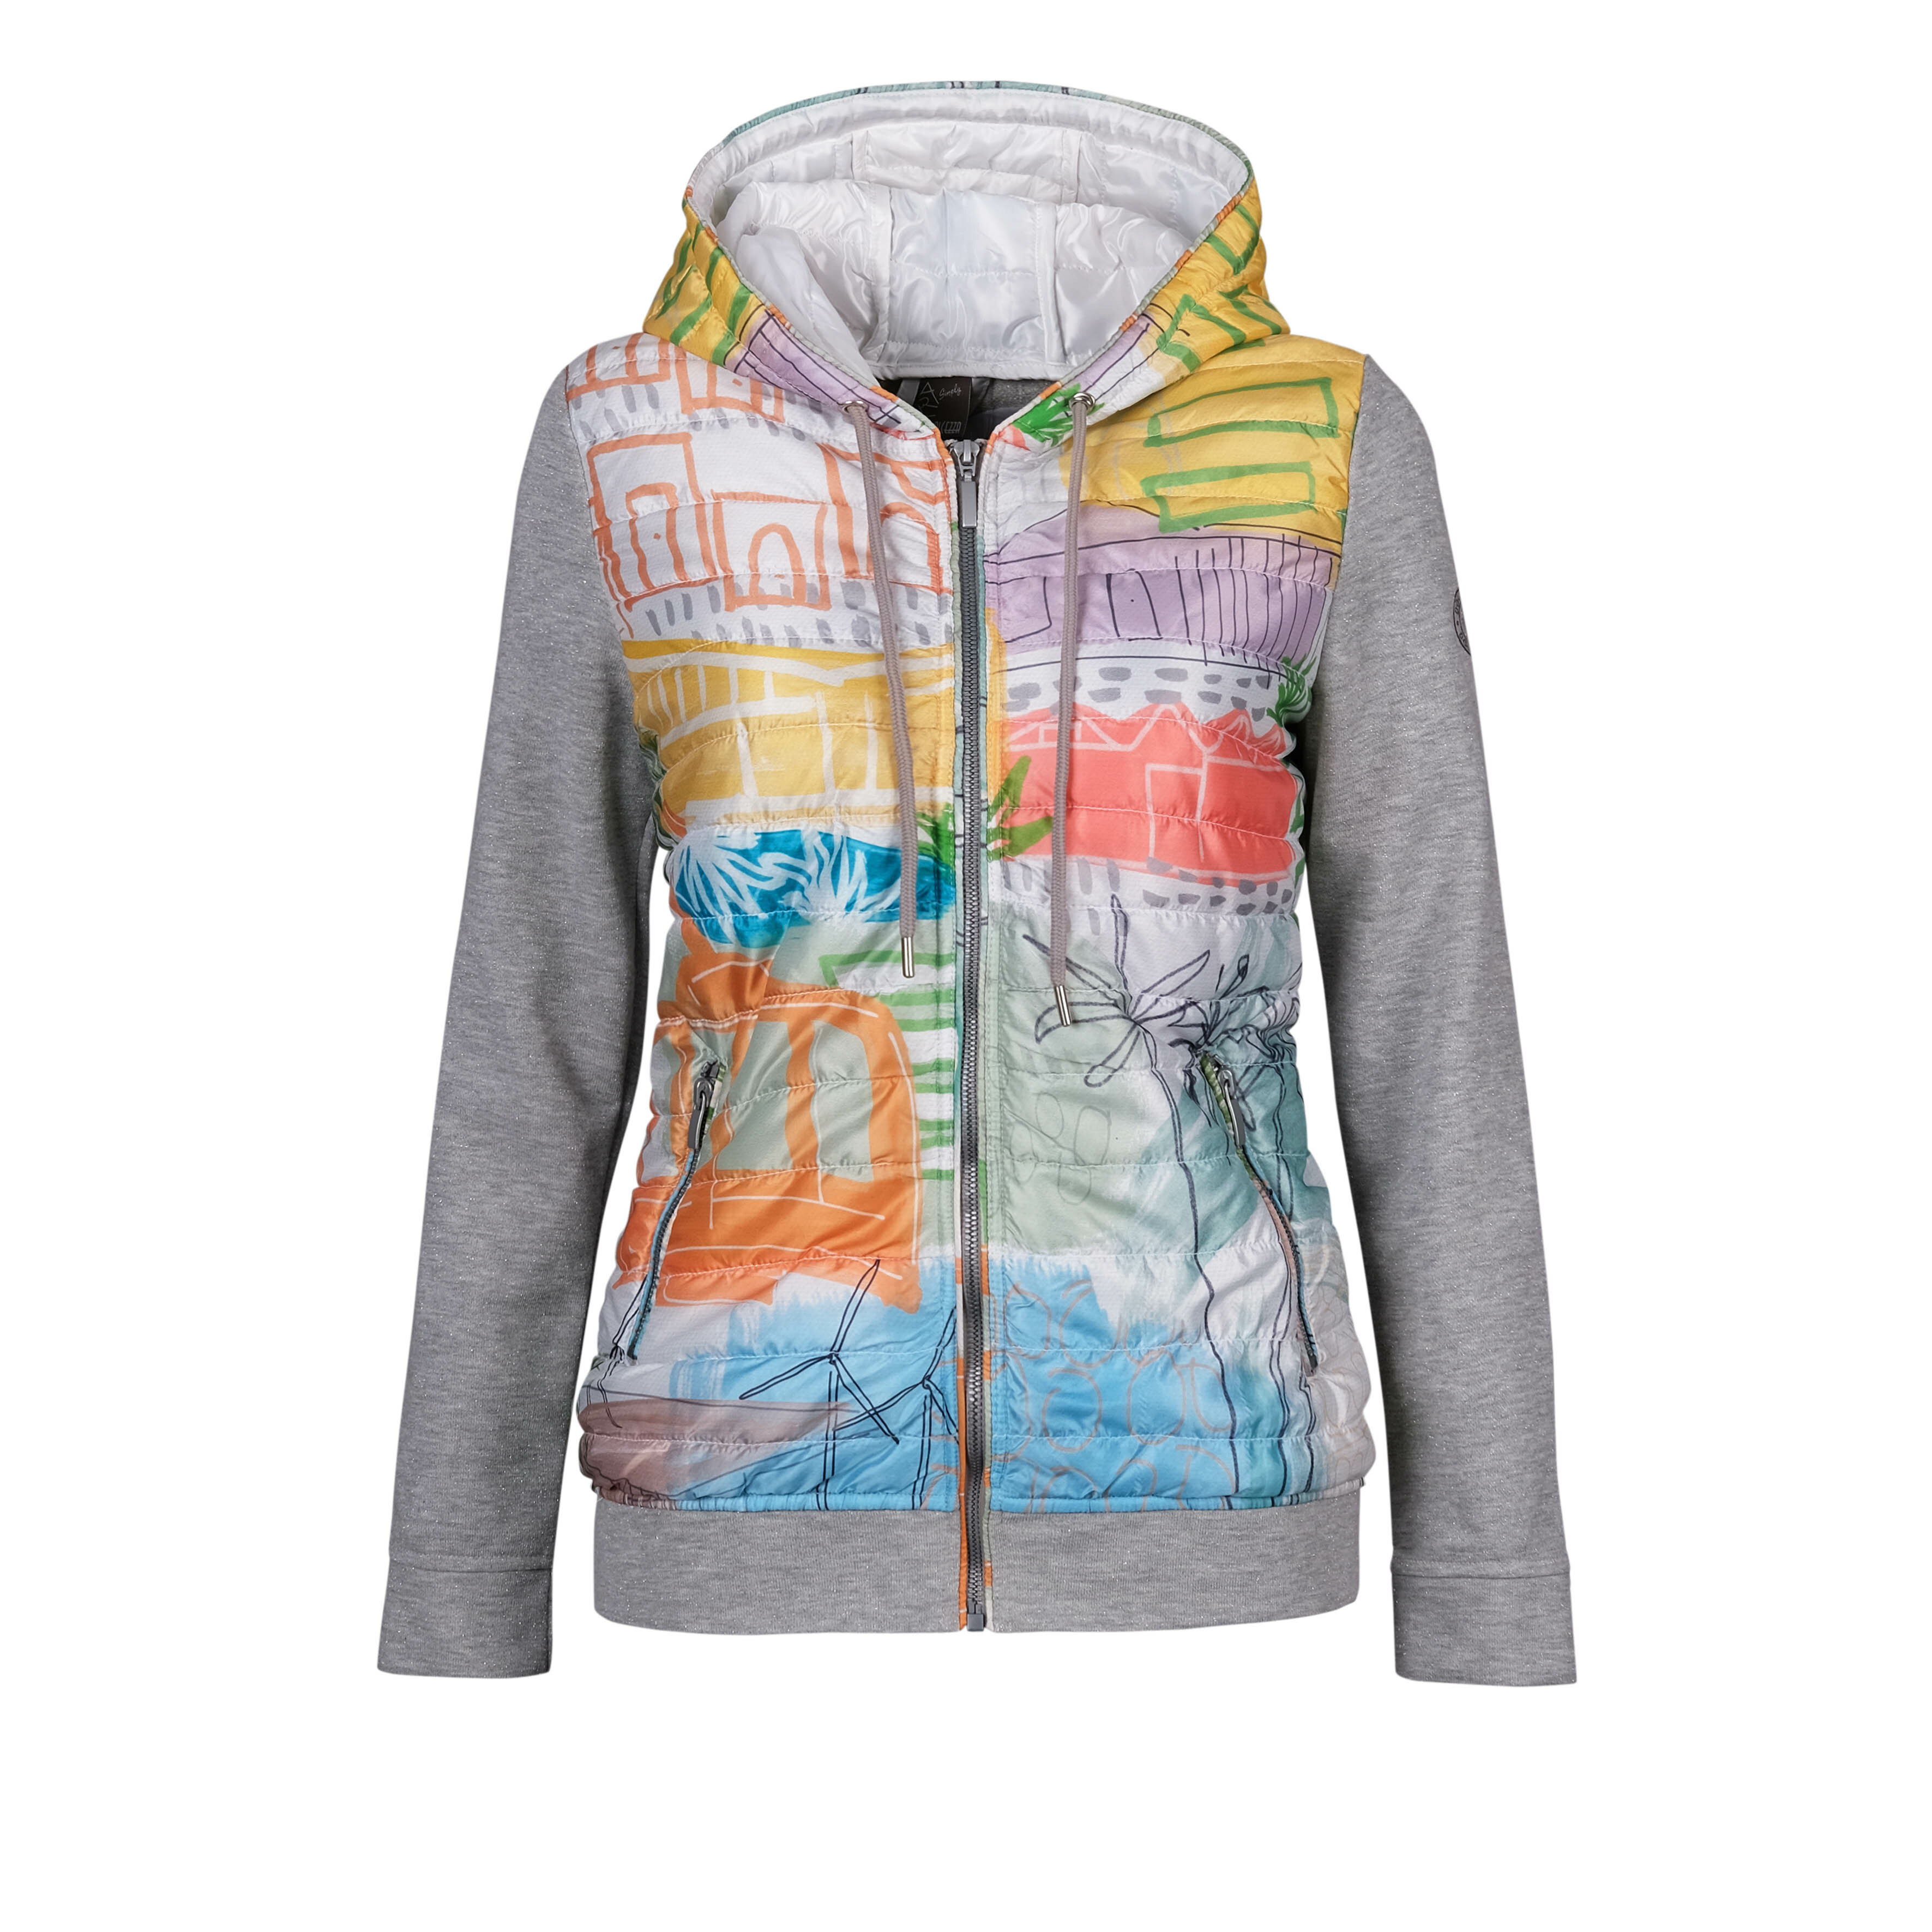 Simply Art Dolcezza: Palm Springs Cityscape Abstract Art Puff Hoodie Jacket (3 Left!) Dolcezza_SimplyArt_20810